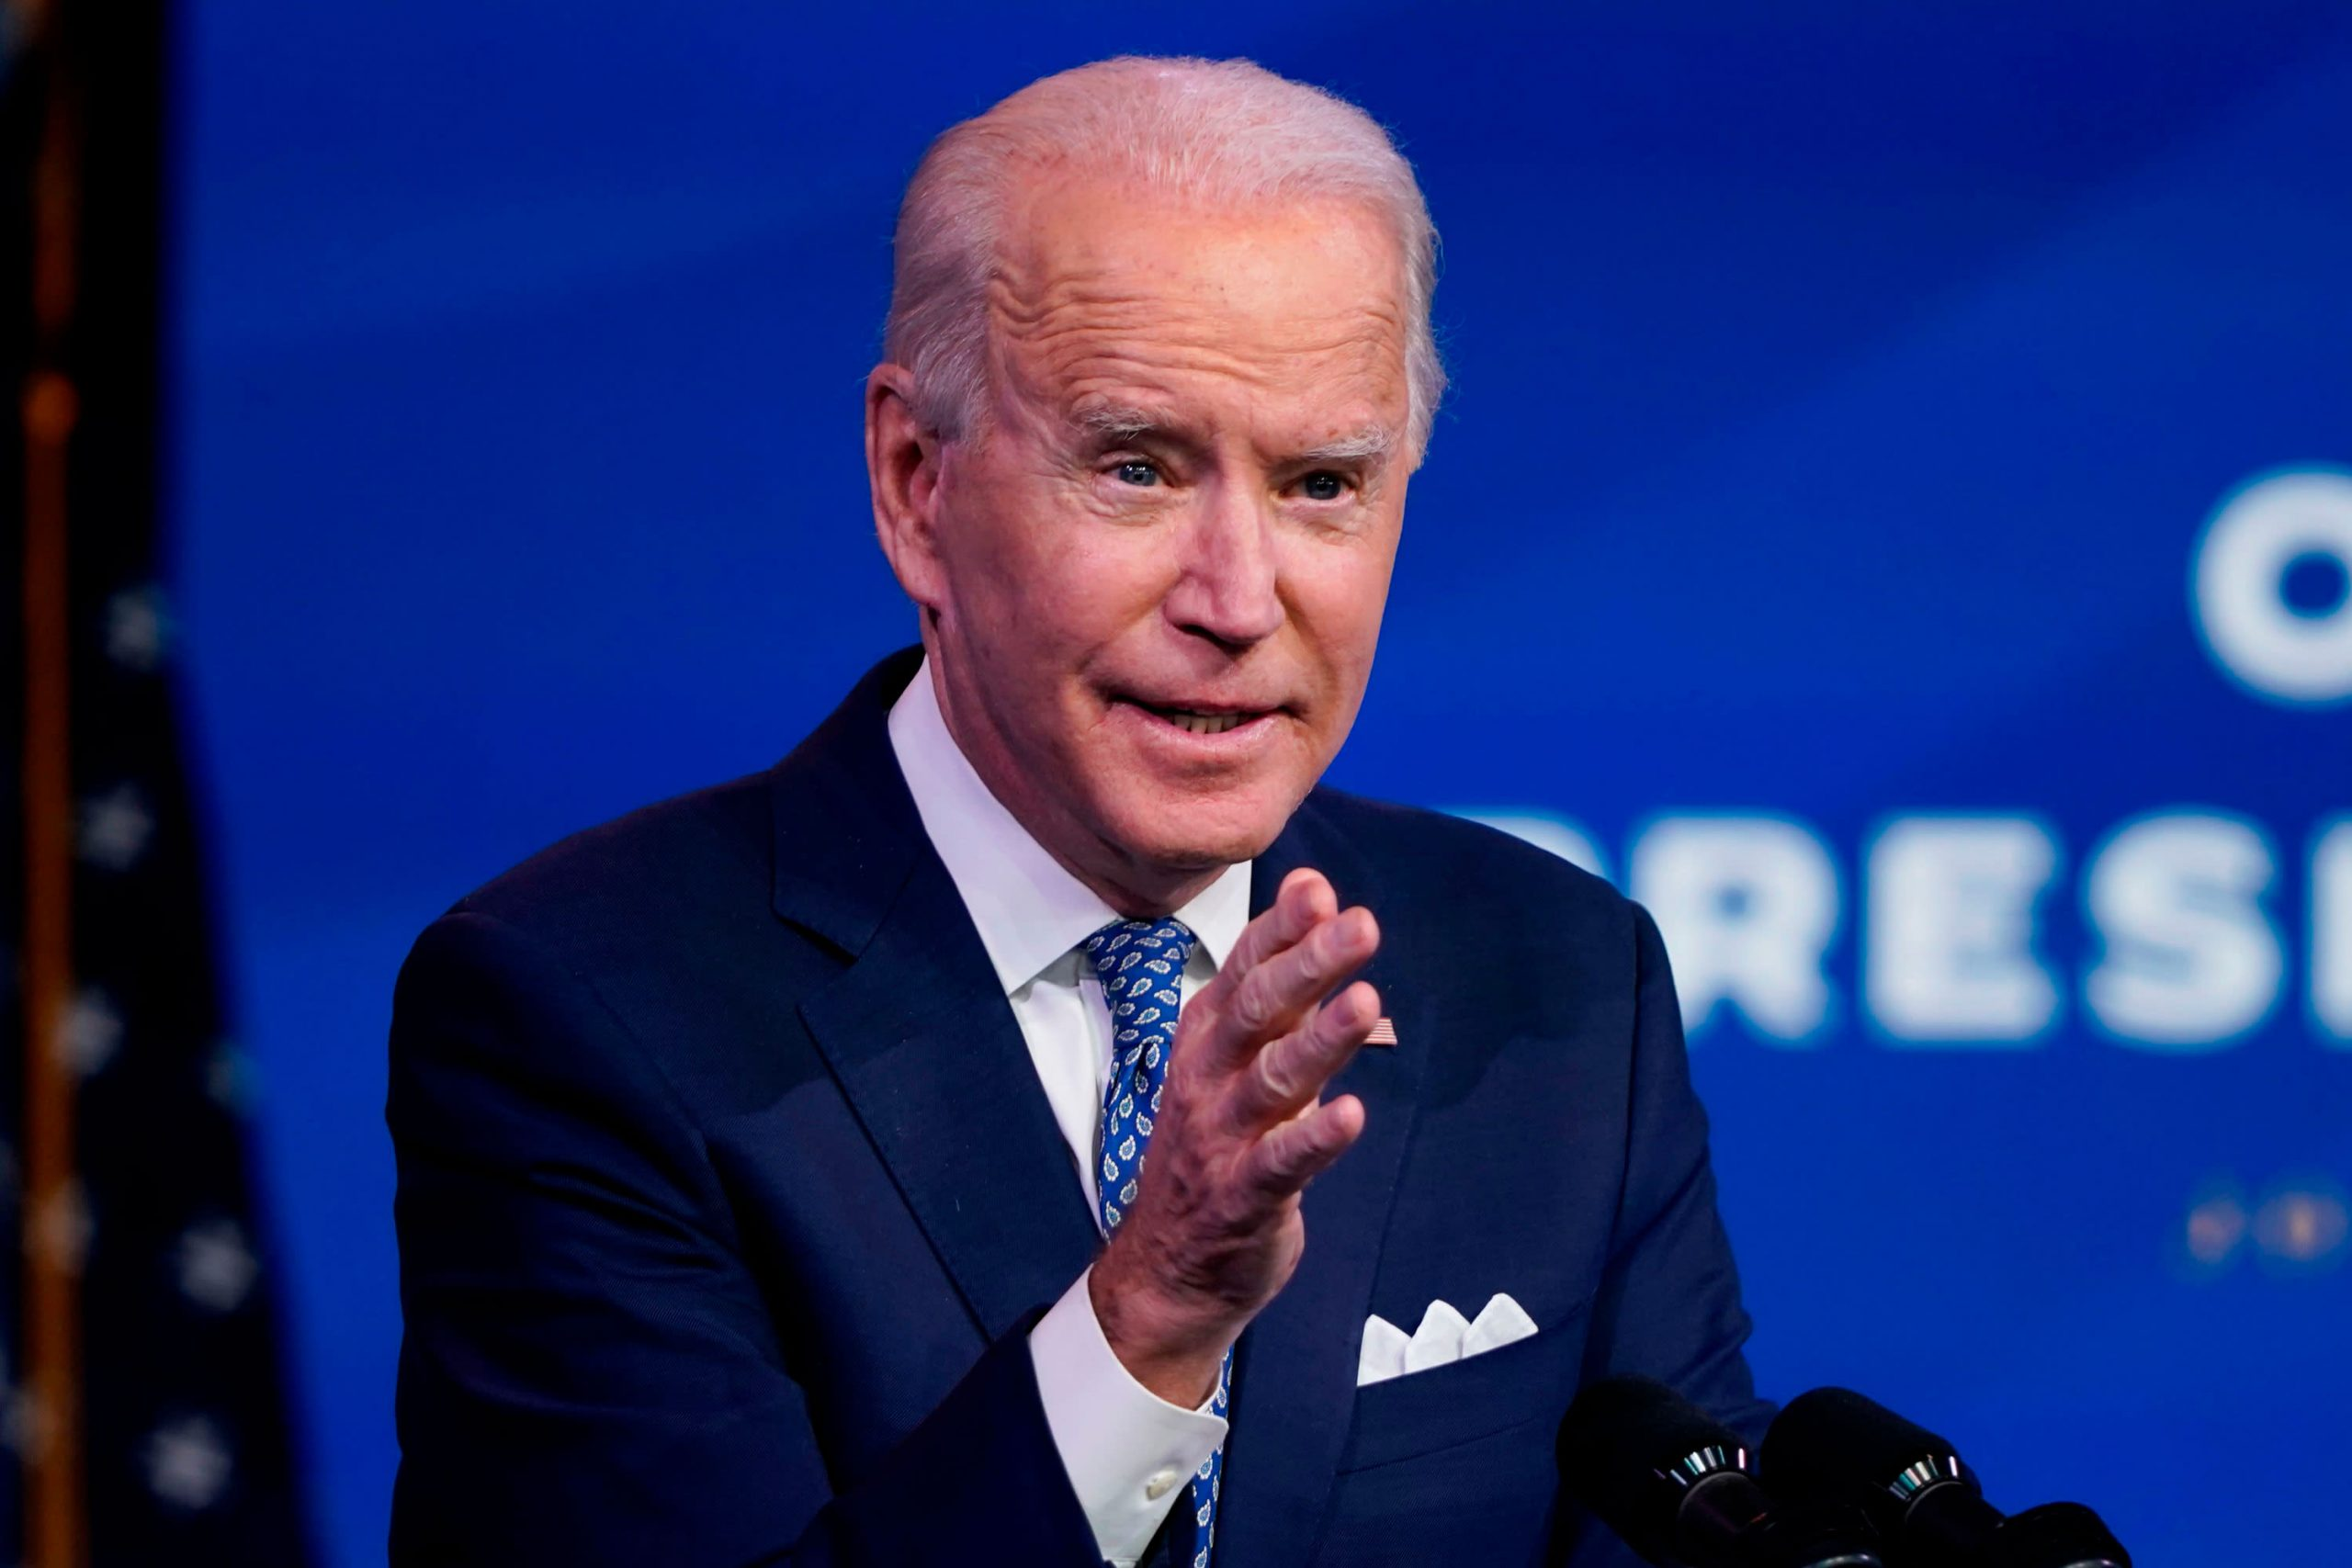 biden-warns-doses-wont-stop-deaths-of-tens-of-thousands-americans